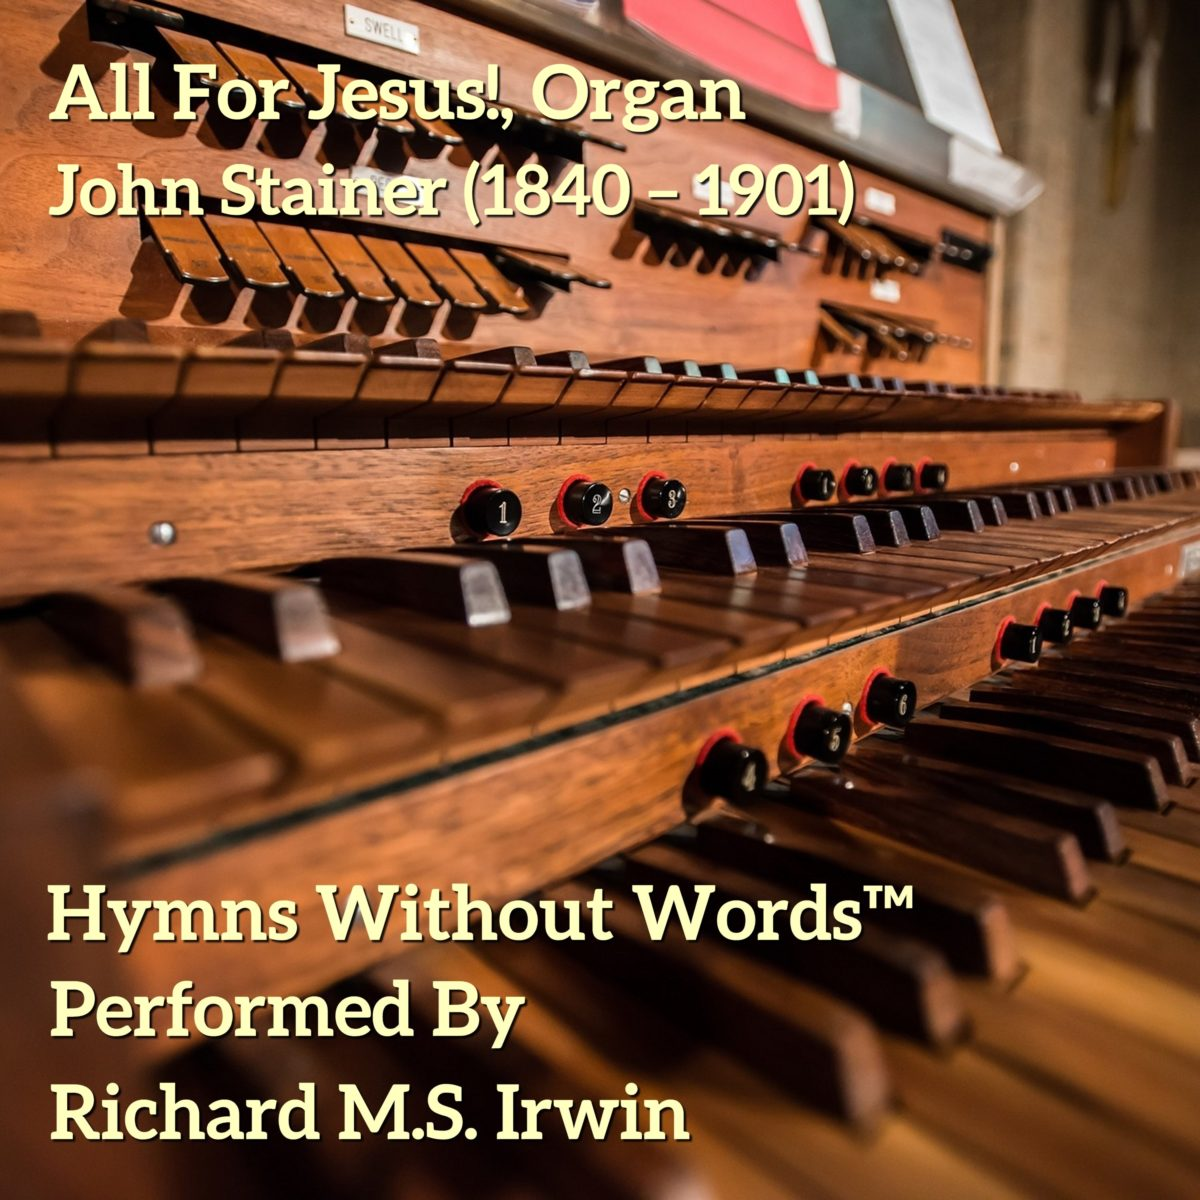 All For Jesus! (All For Jesus, Organ, 5 Verses)